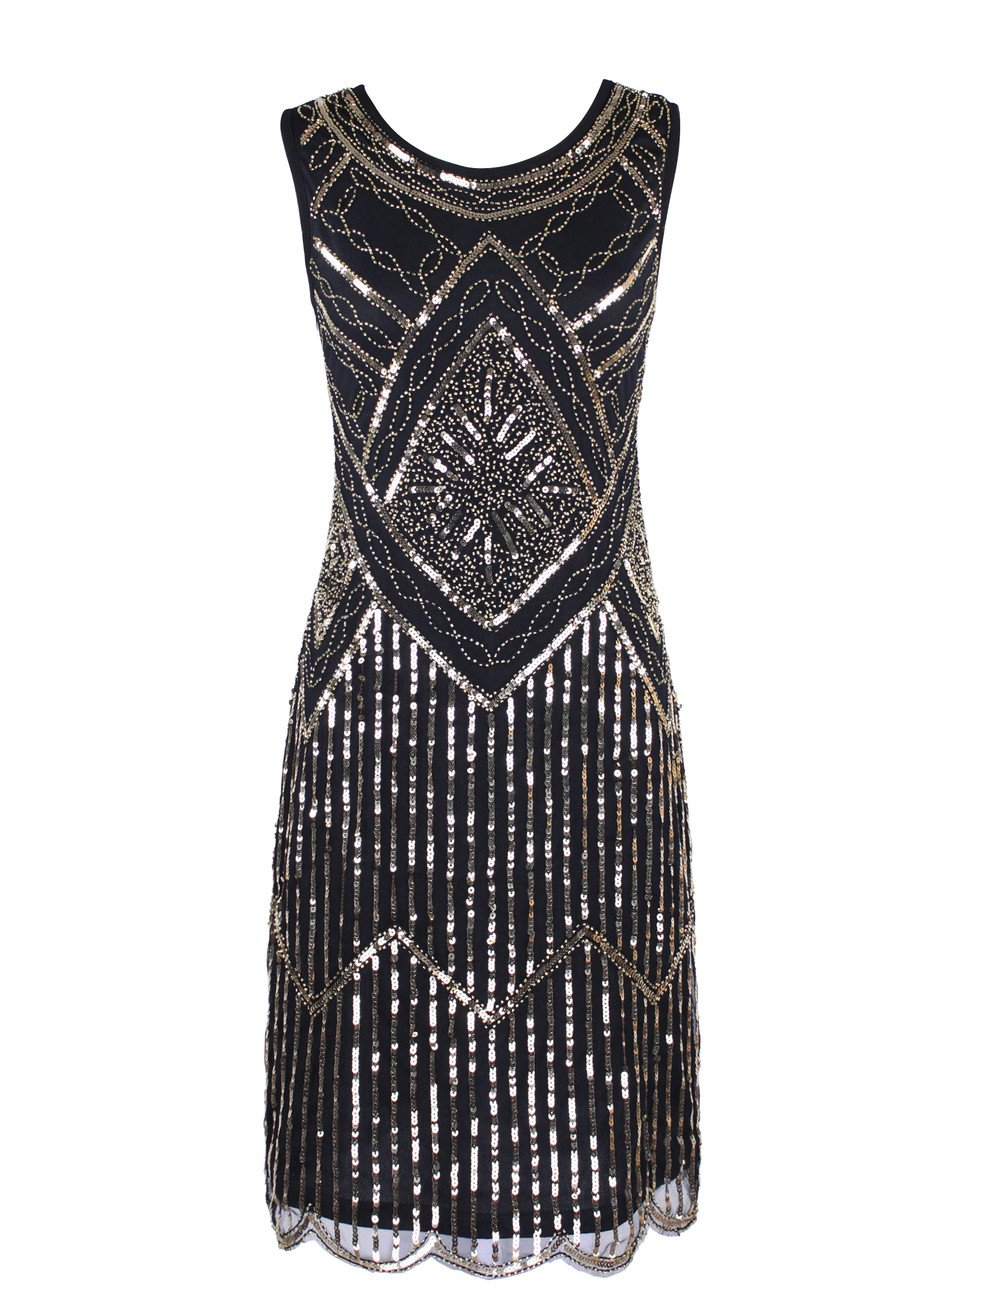 KAYAMIYA Women's 1920S Sequined Fringe Beaded Gatsby Flapper Evening Dress 0